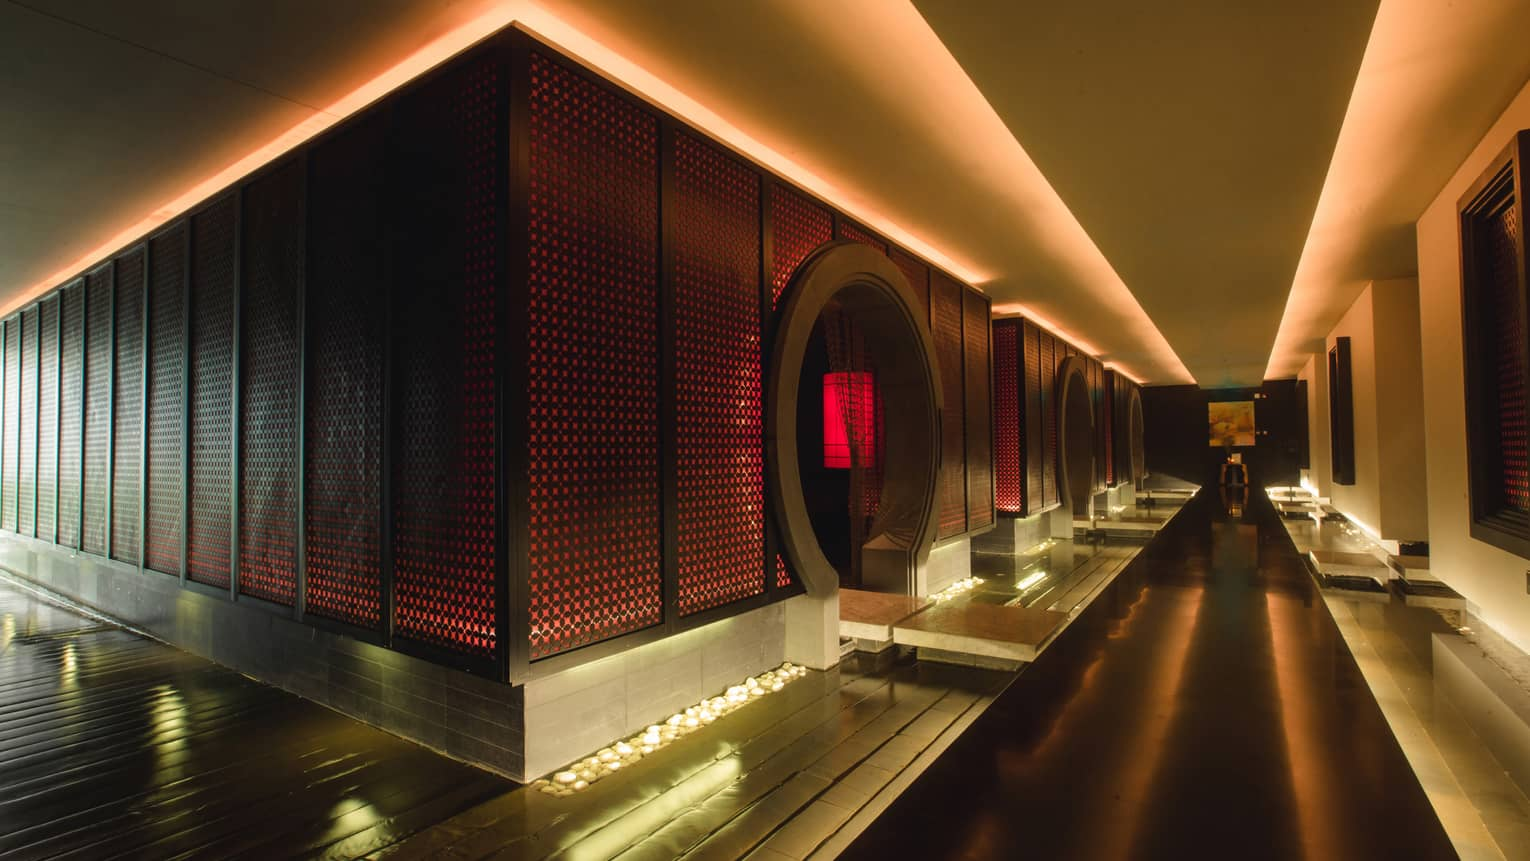 Dark floating walkway down dramatic spa hall past wall with red lights, circular doorways